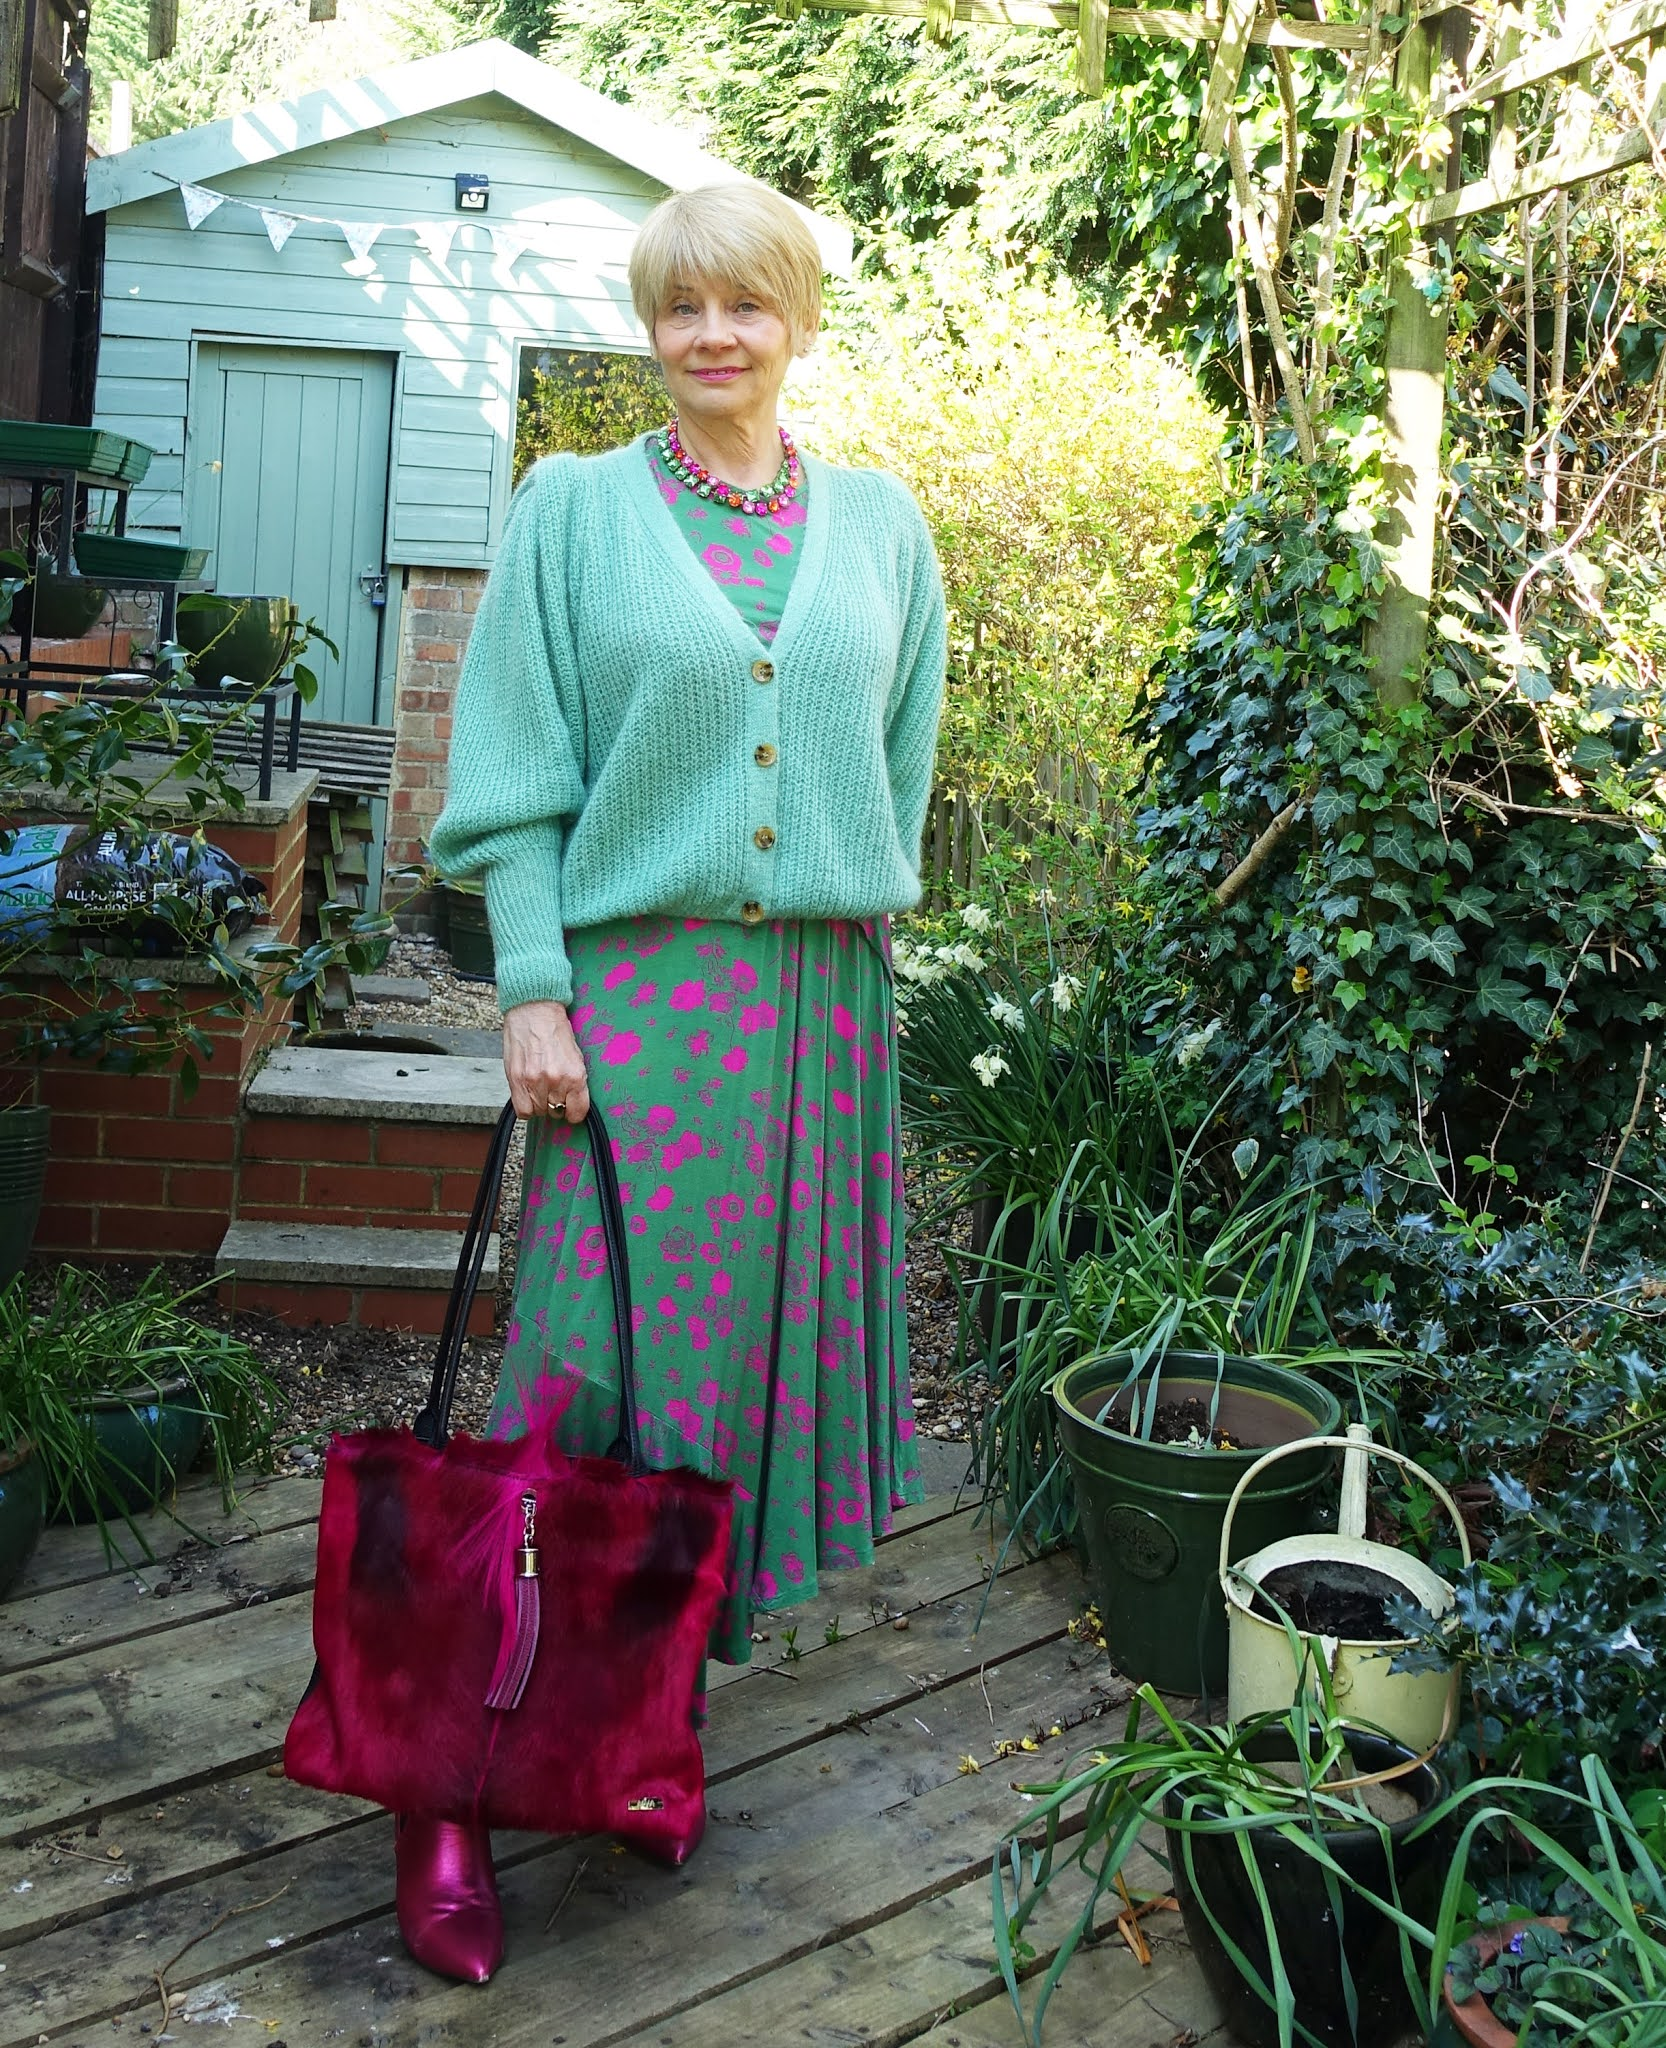 Gail Hanlon from Is This Mutton in green and pink midi dress with mohair green cardigan and pink boots